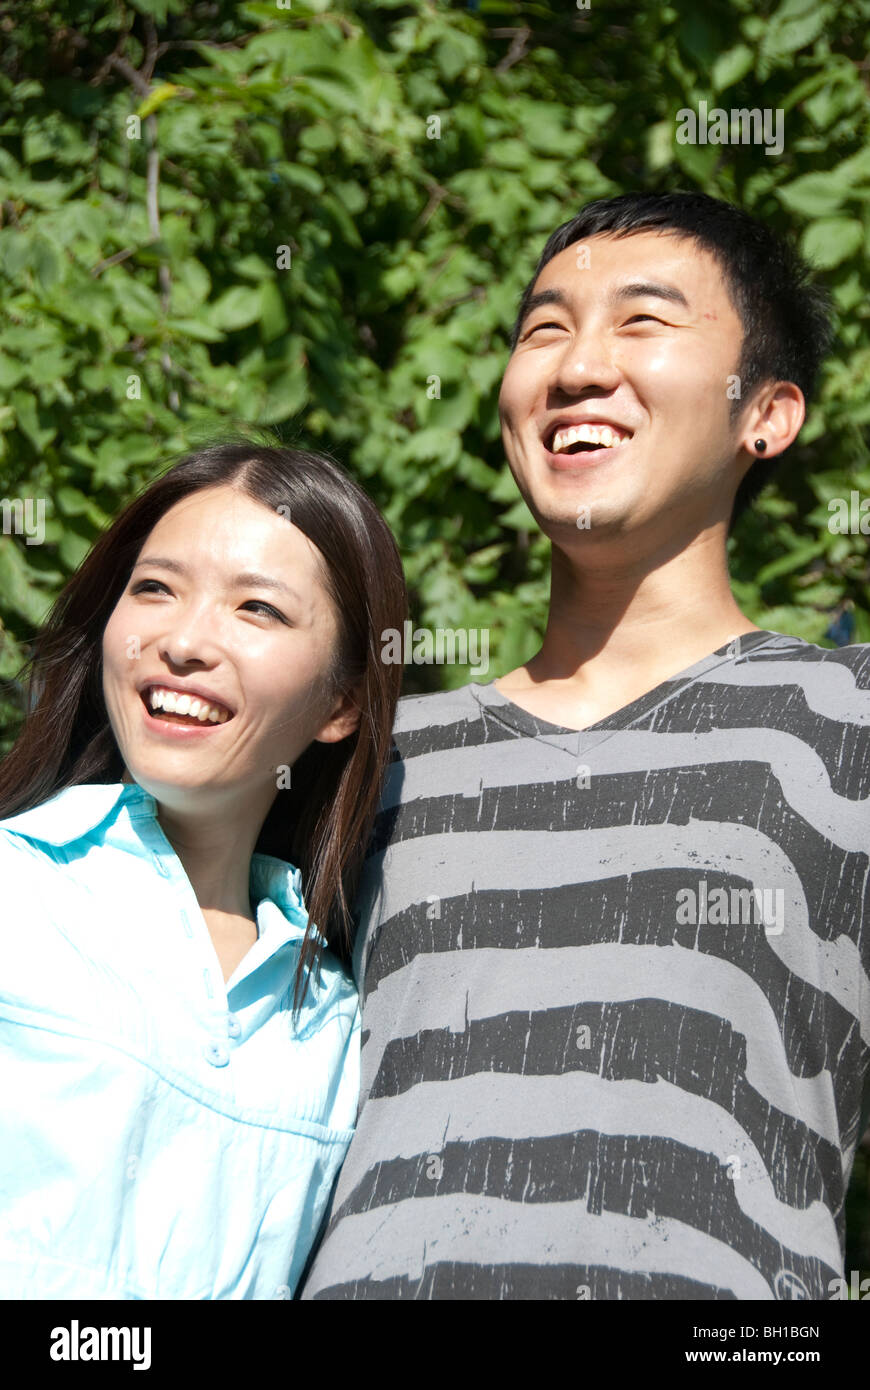 Jeune couple d'origine asiatique dans le parc Assiniboine, Winnipeg, Manitoba, Canada Photo Stock